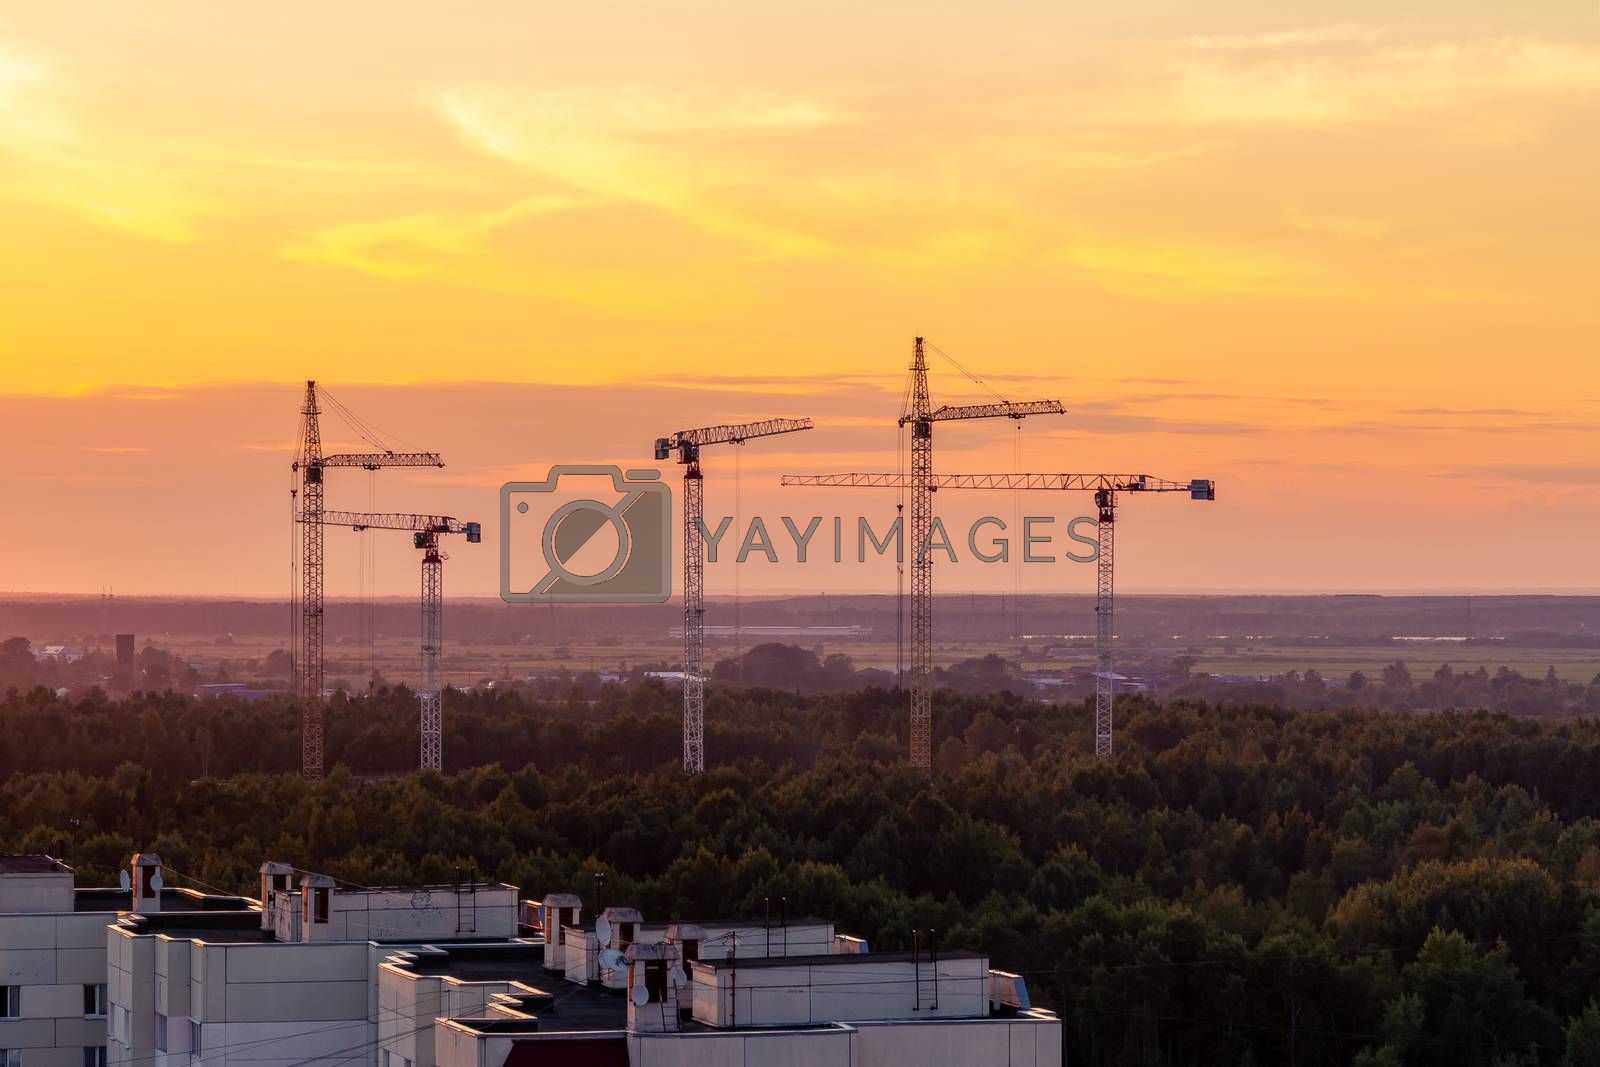 Several construction cranes on the background of colorful sunset sky by galsand